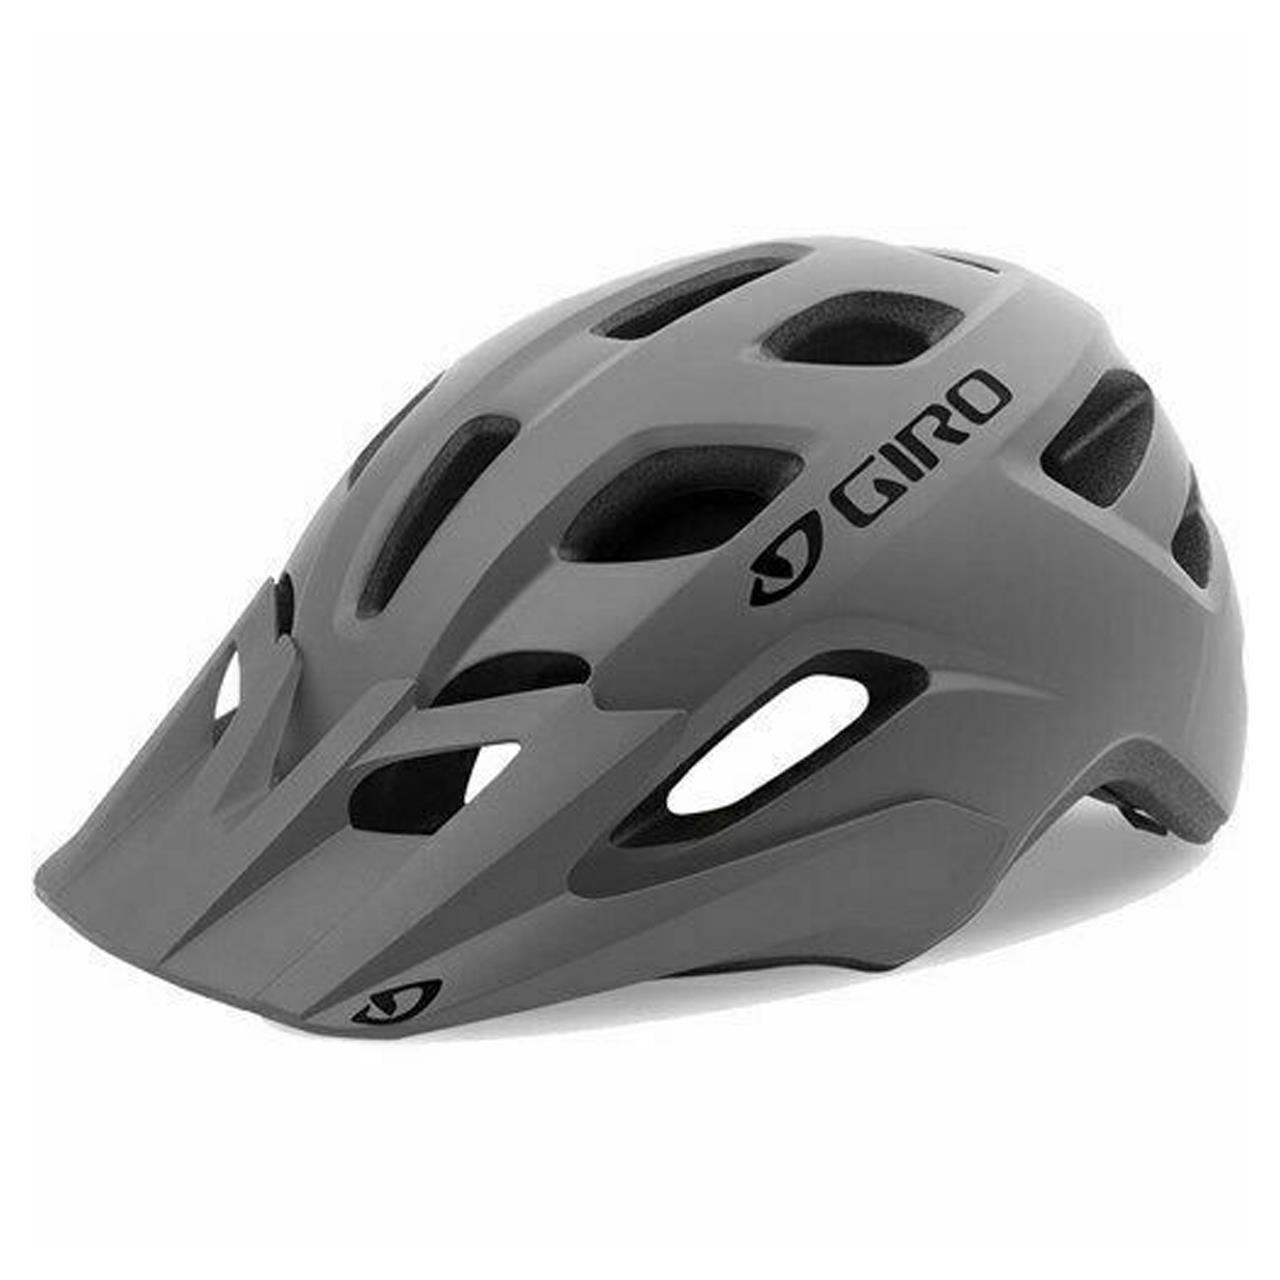 Grey Giro Cycling Helmet